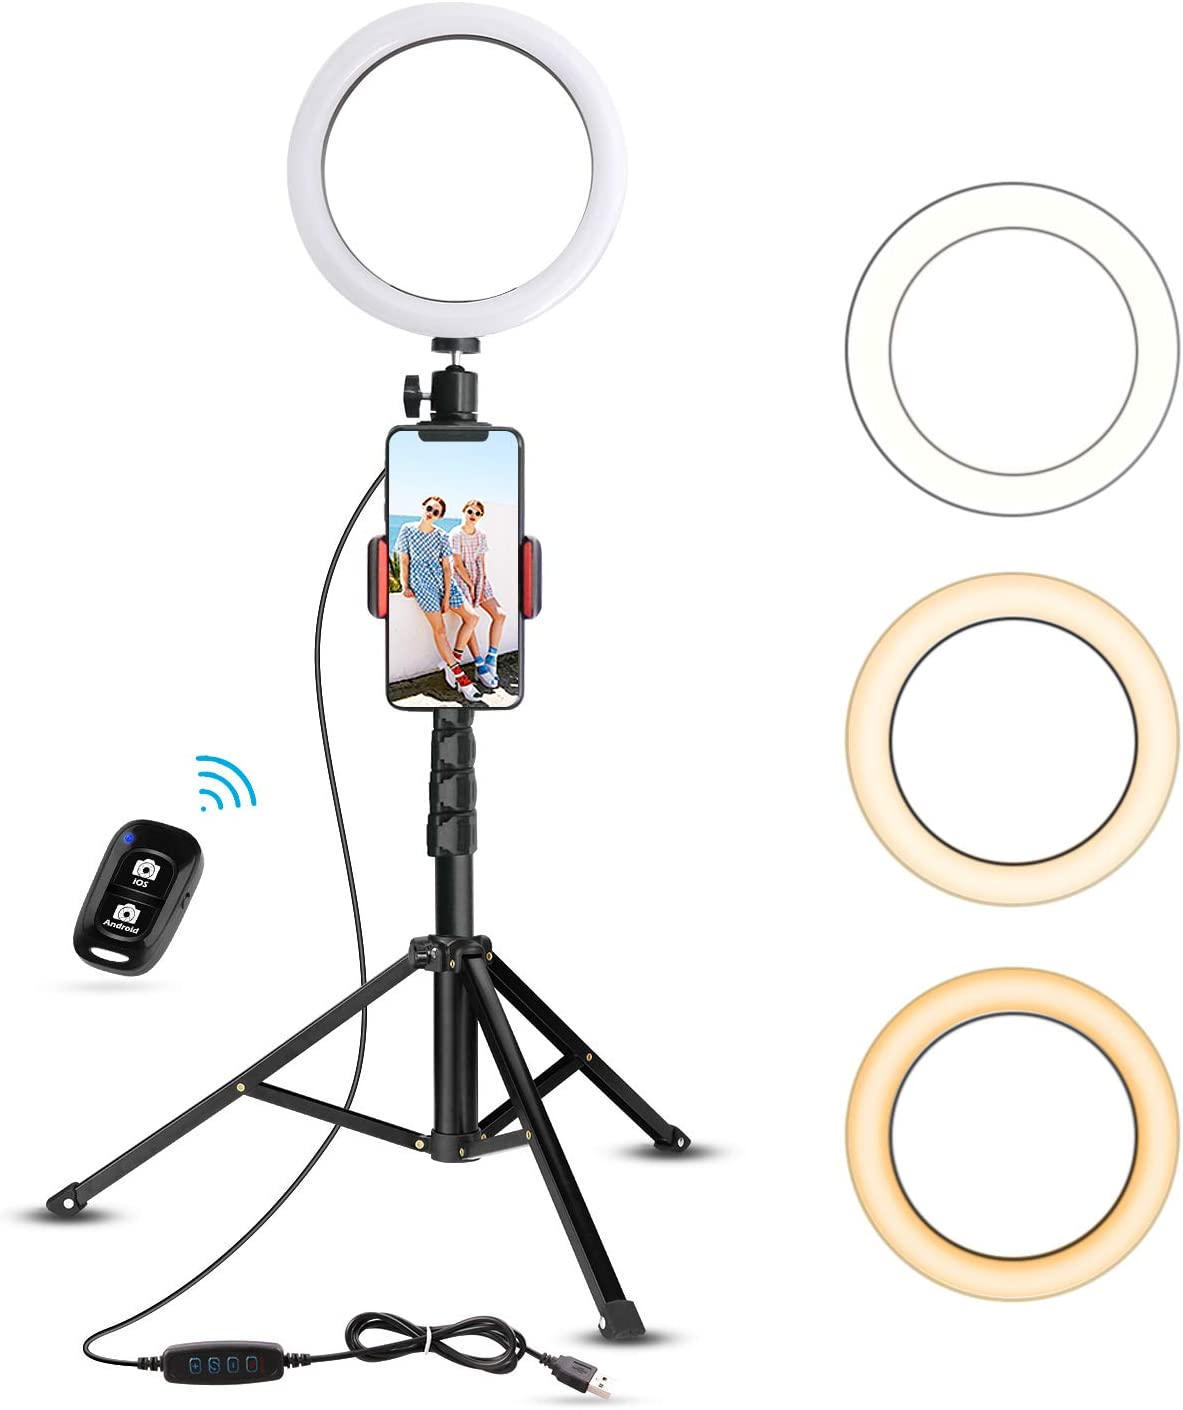 Compatible with iPhone//Android Villsure LED Ring Light Dimmable Led Camera Ringlight for Live Stream//Make Up//YouTube 10 Selfie Ring Light with Adjustable Tripod Stand and Phone Holder